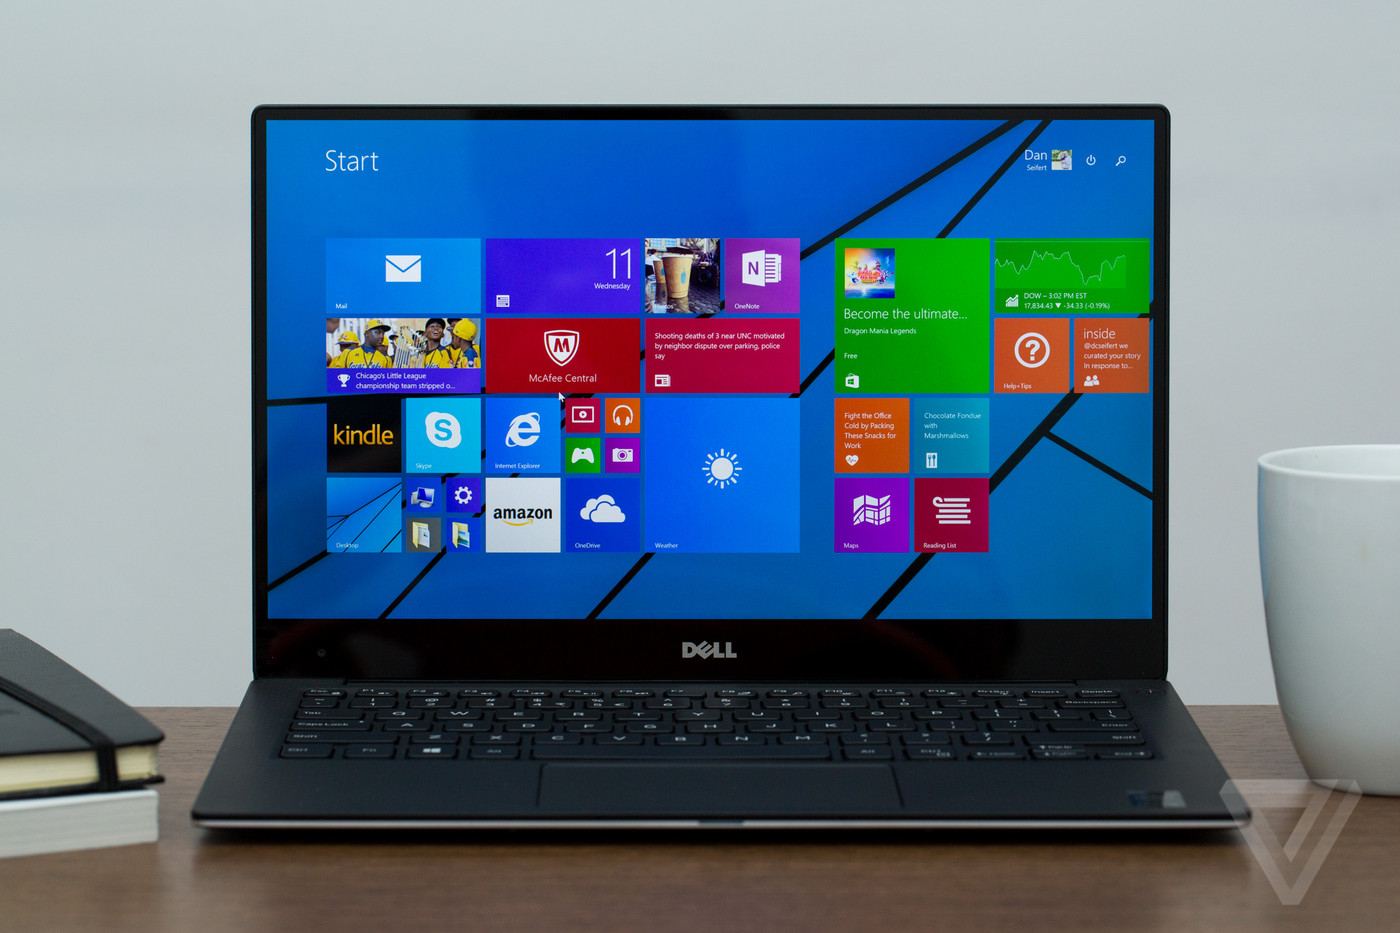 Dell's XPS 13 is a look at the future of laptops - The Verge